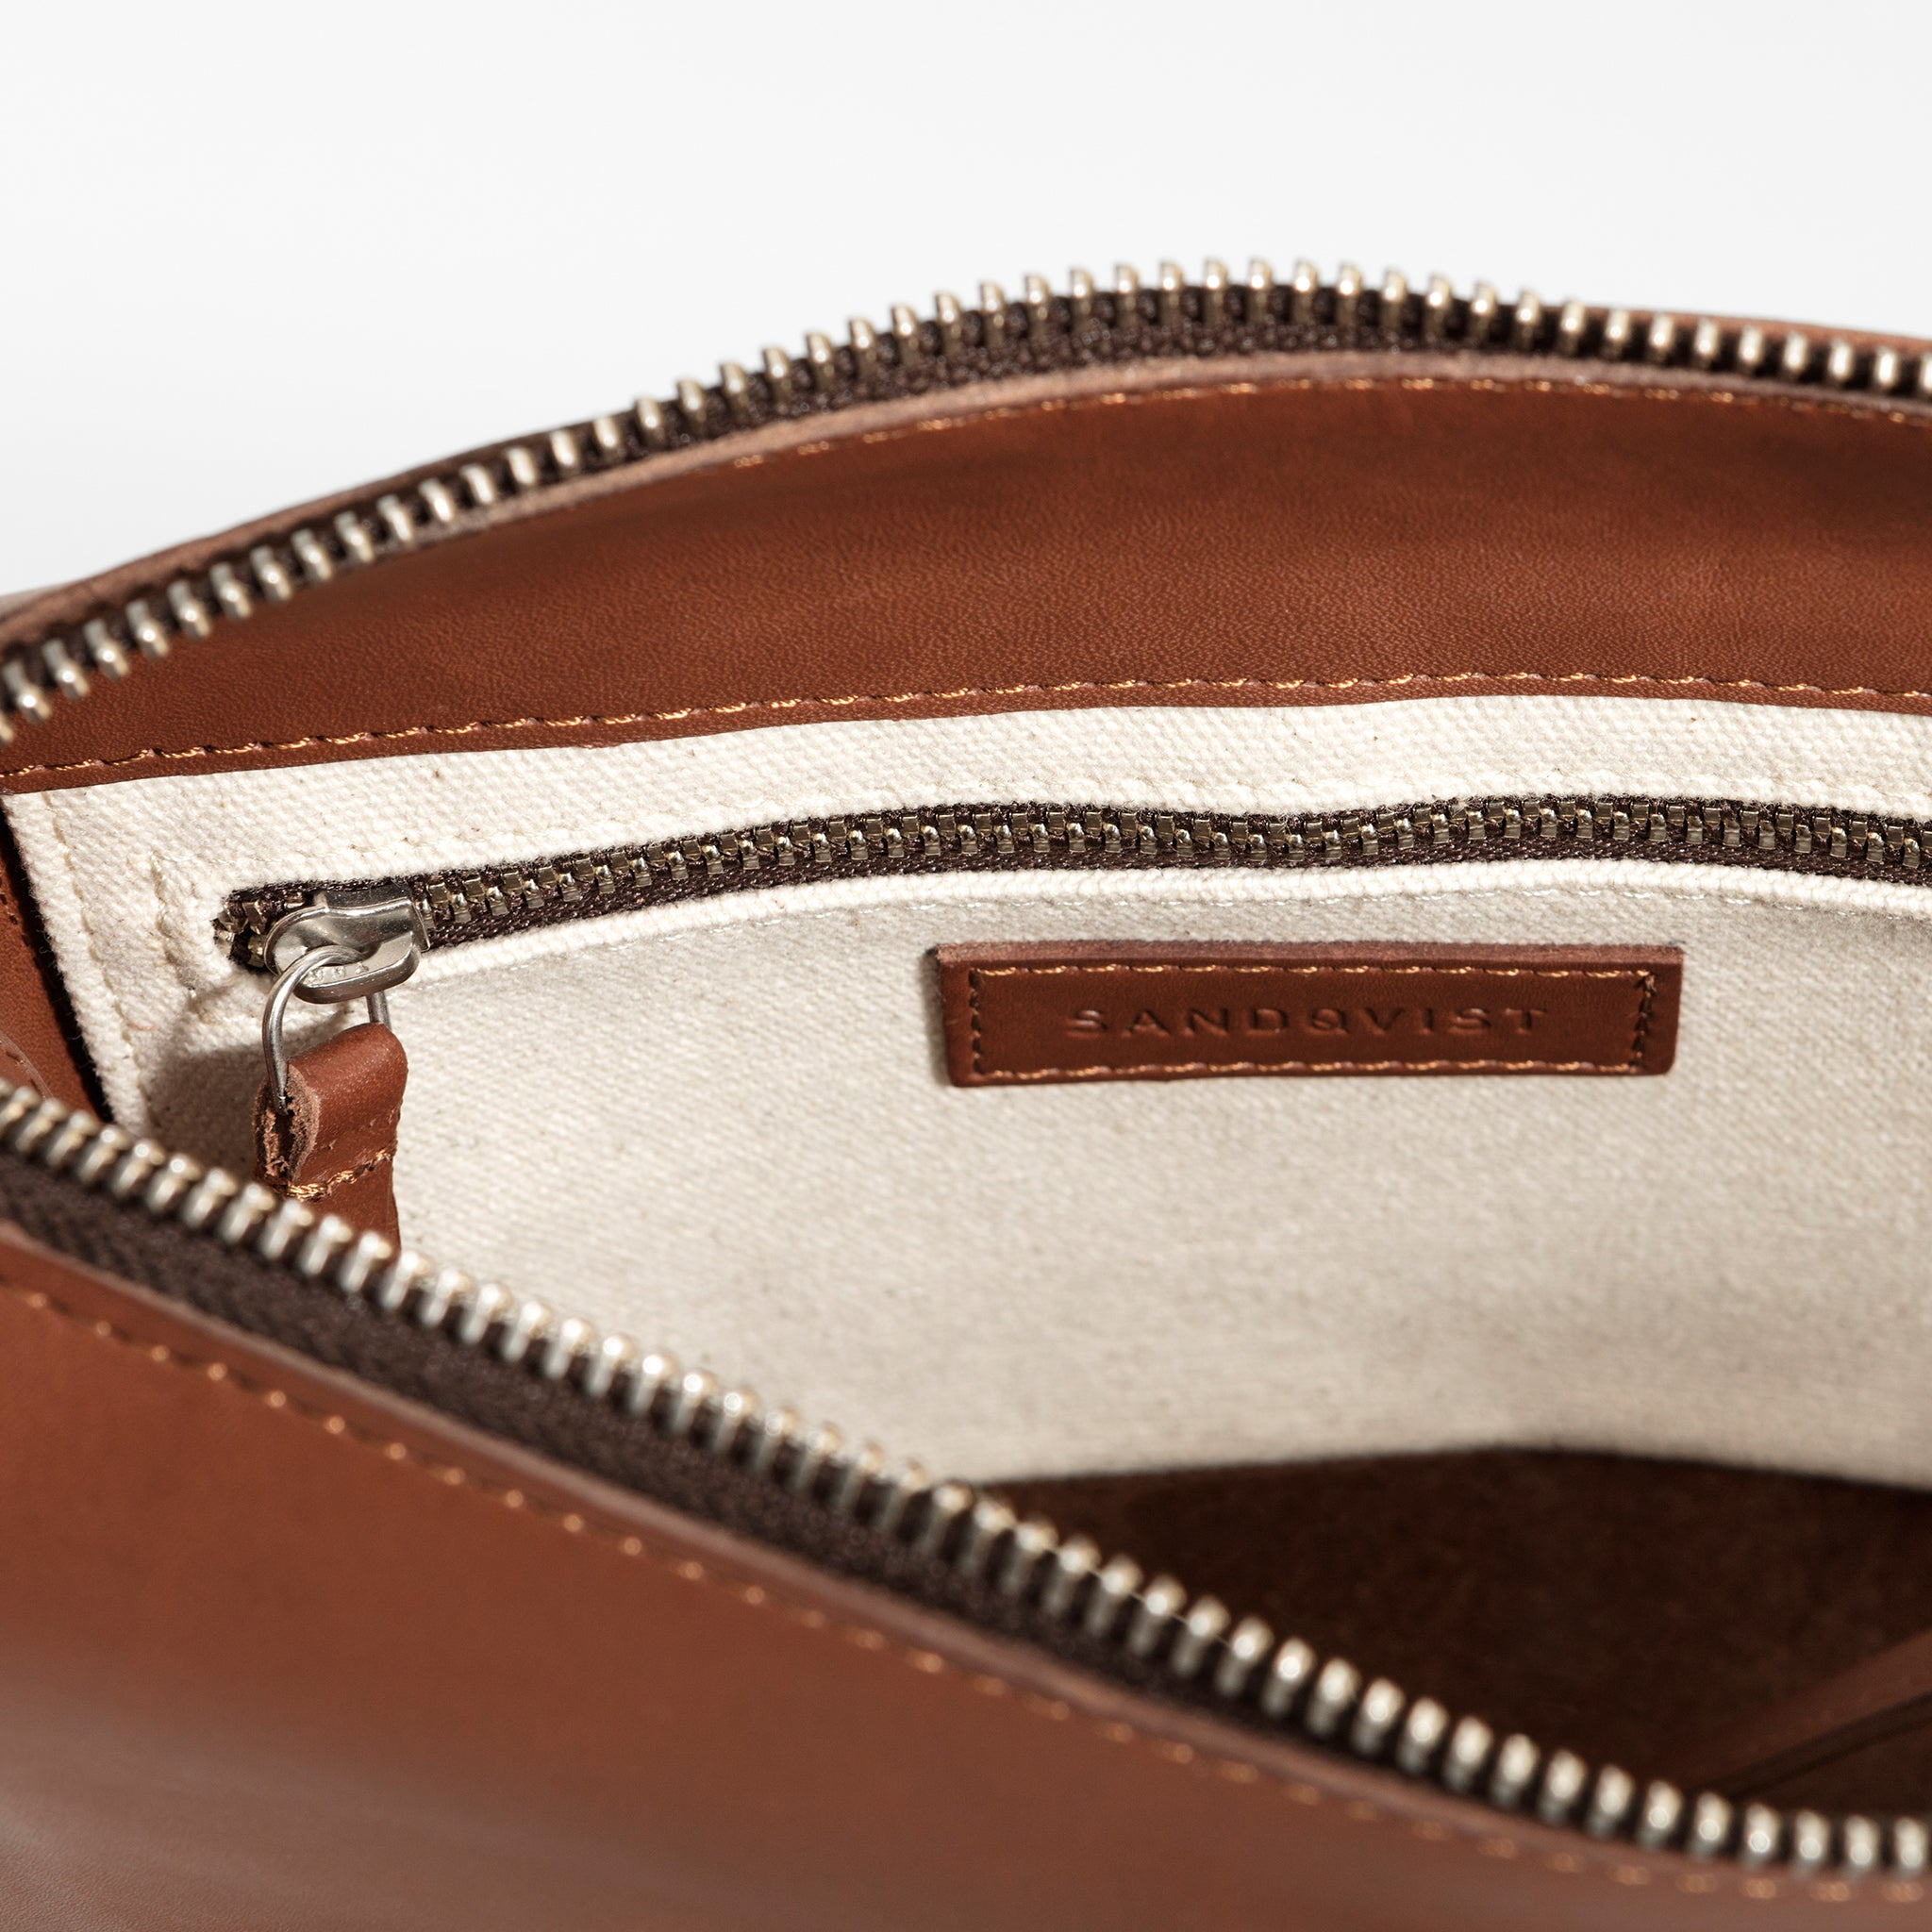 Sandqvist Frances Bag in Cognac Brown